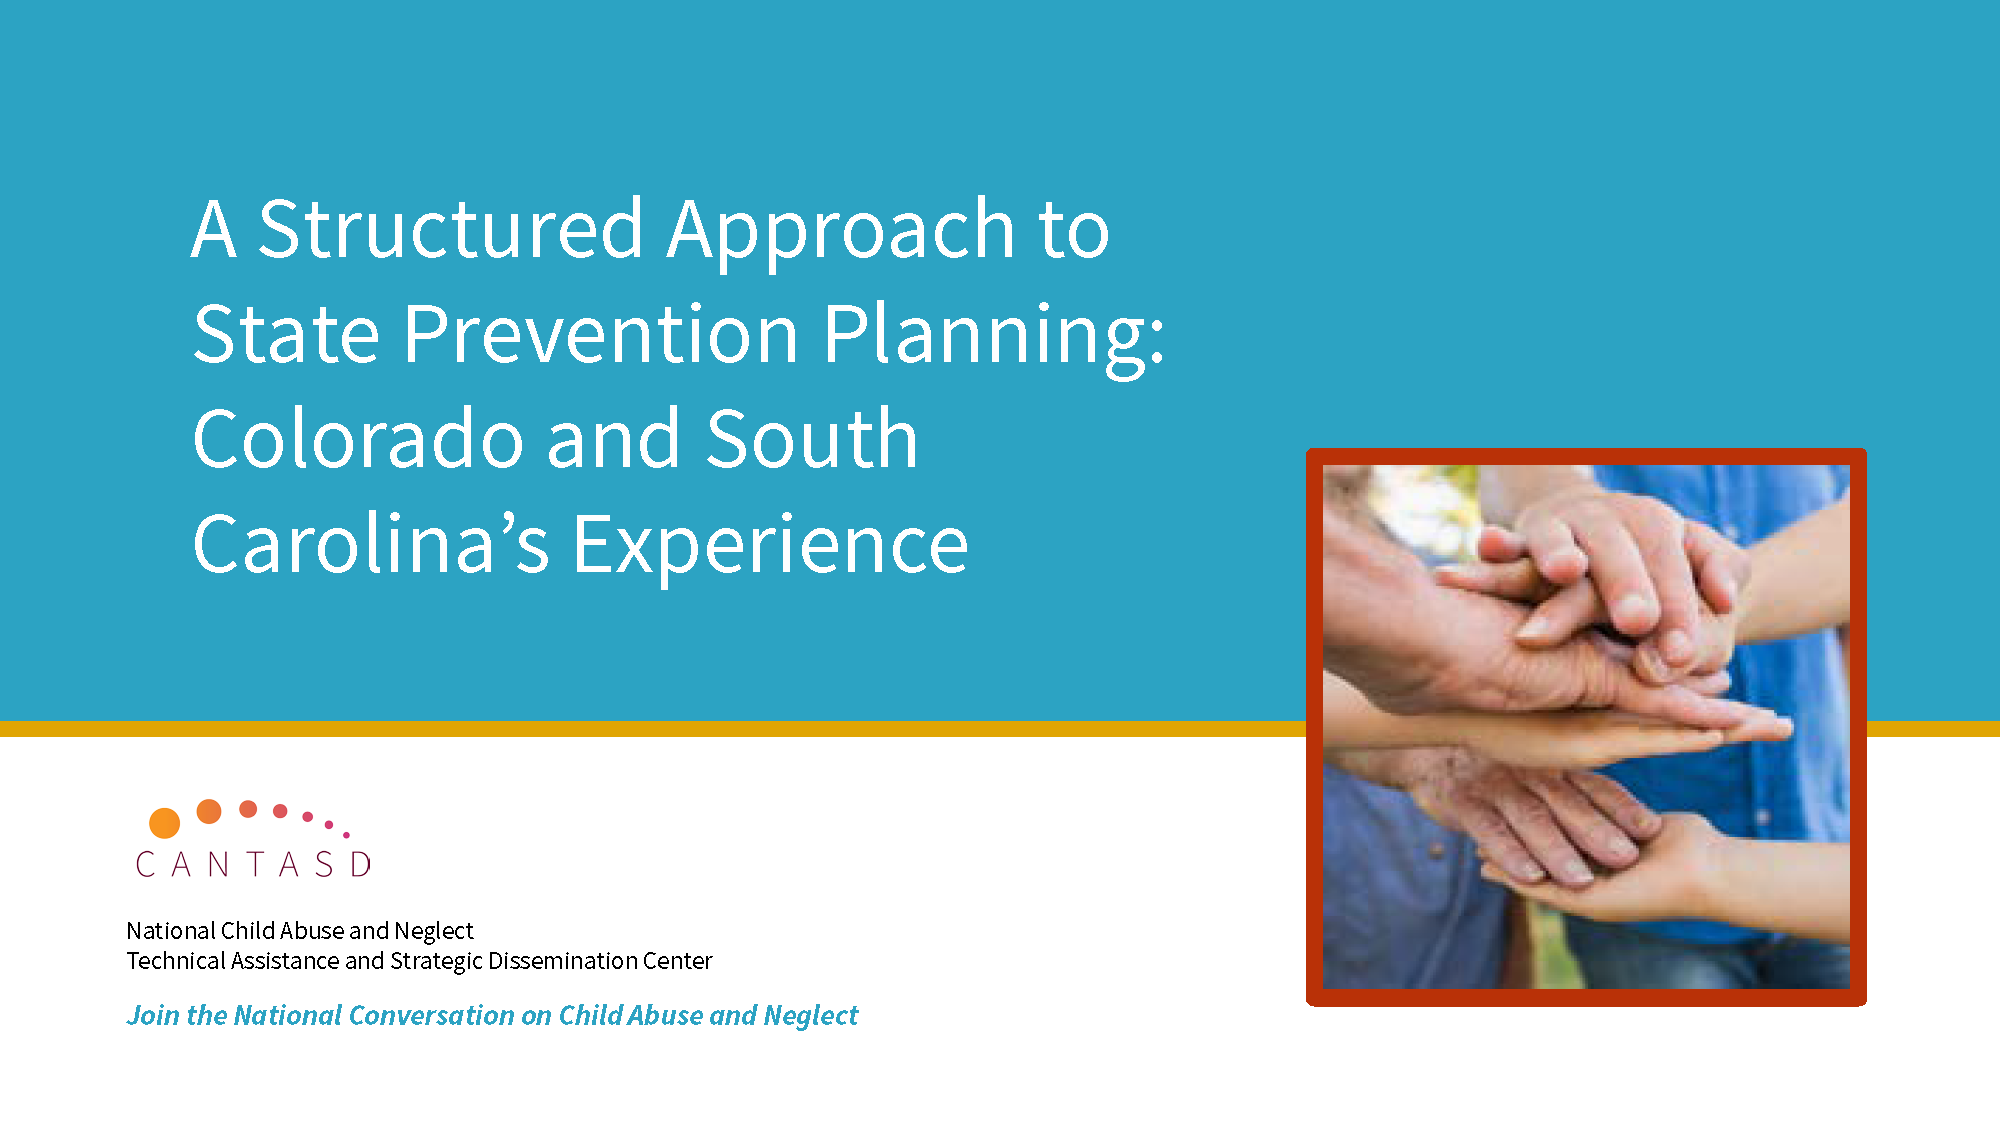 A Structured Approach to State Prevention Planning: Colorado and South Carolina's Experience - This link opens in a new window